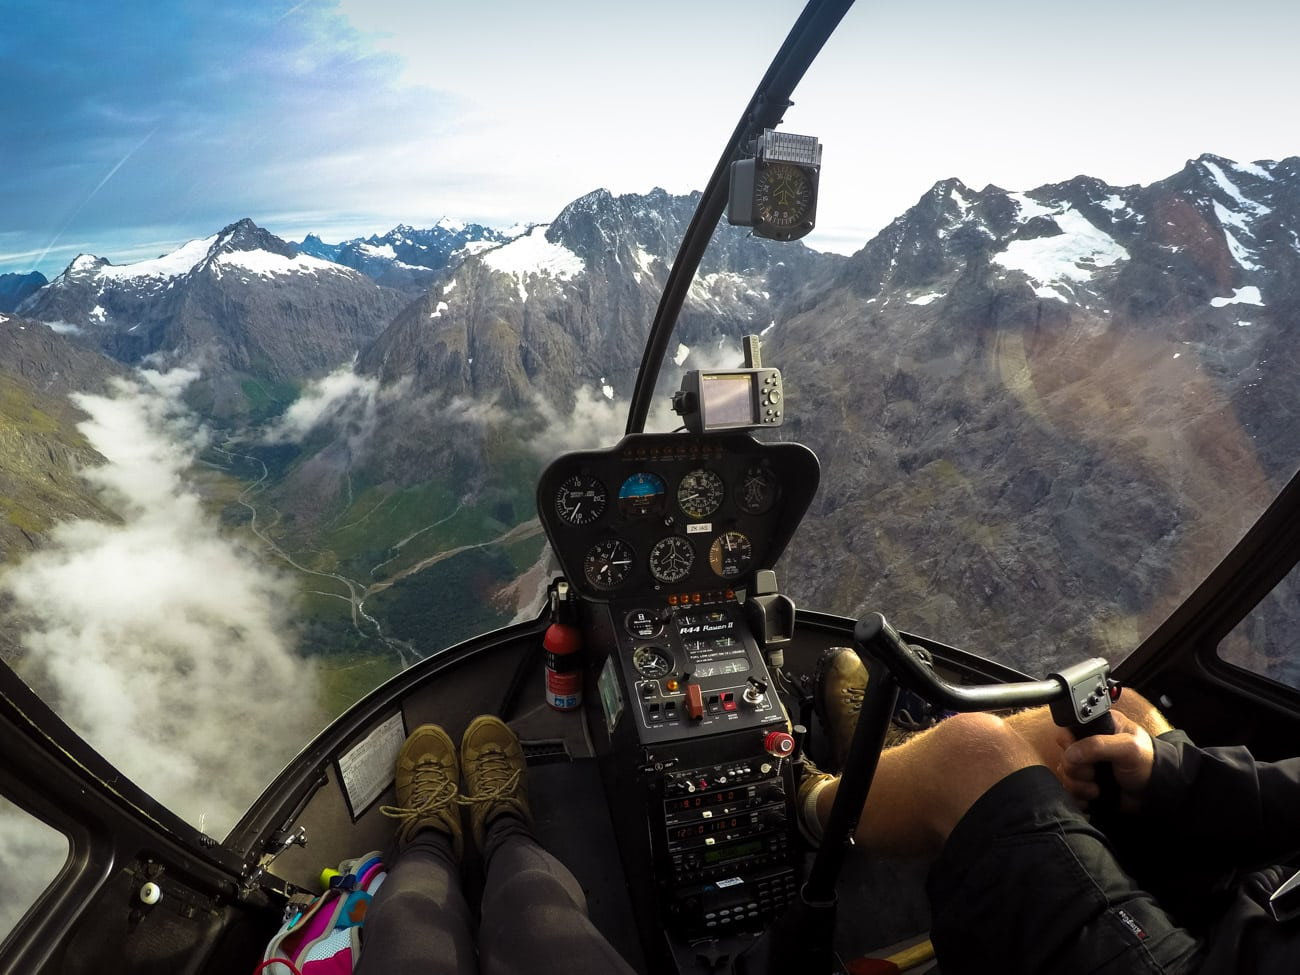 My GoPro was mounted on a head strap in timelapse mode for this shot above Milford Sound in New Zealand. // Learn my favorite GoPro tips and tricks to improve your travel photography.